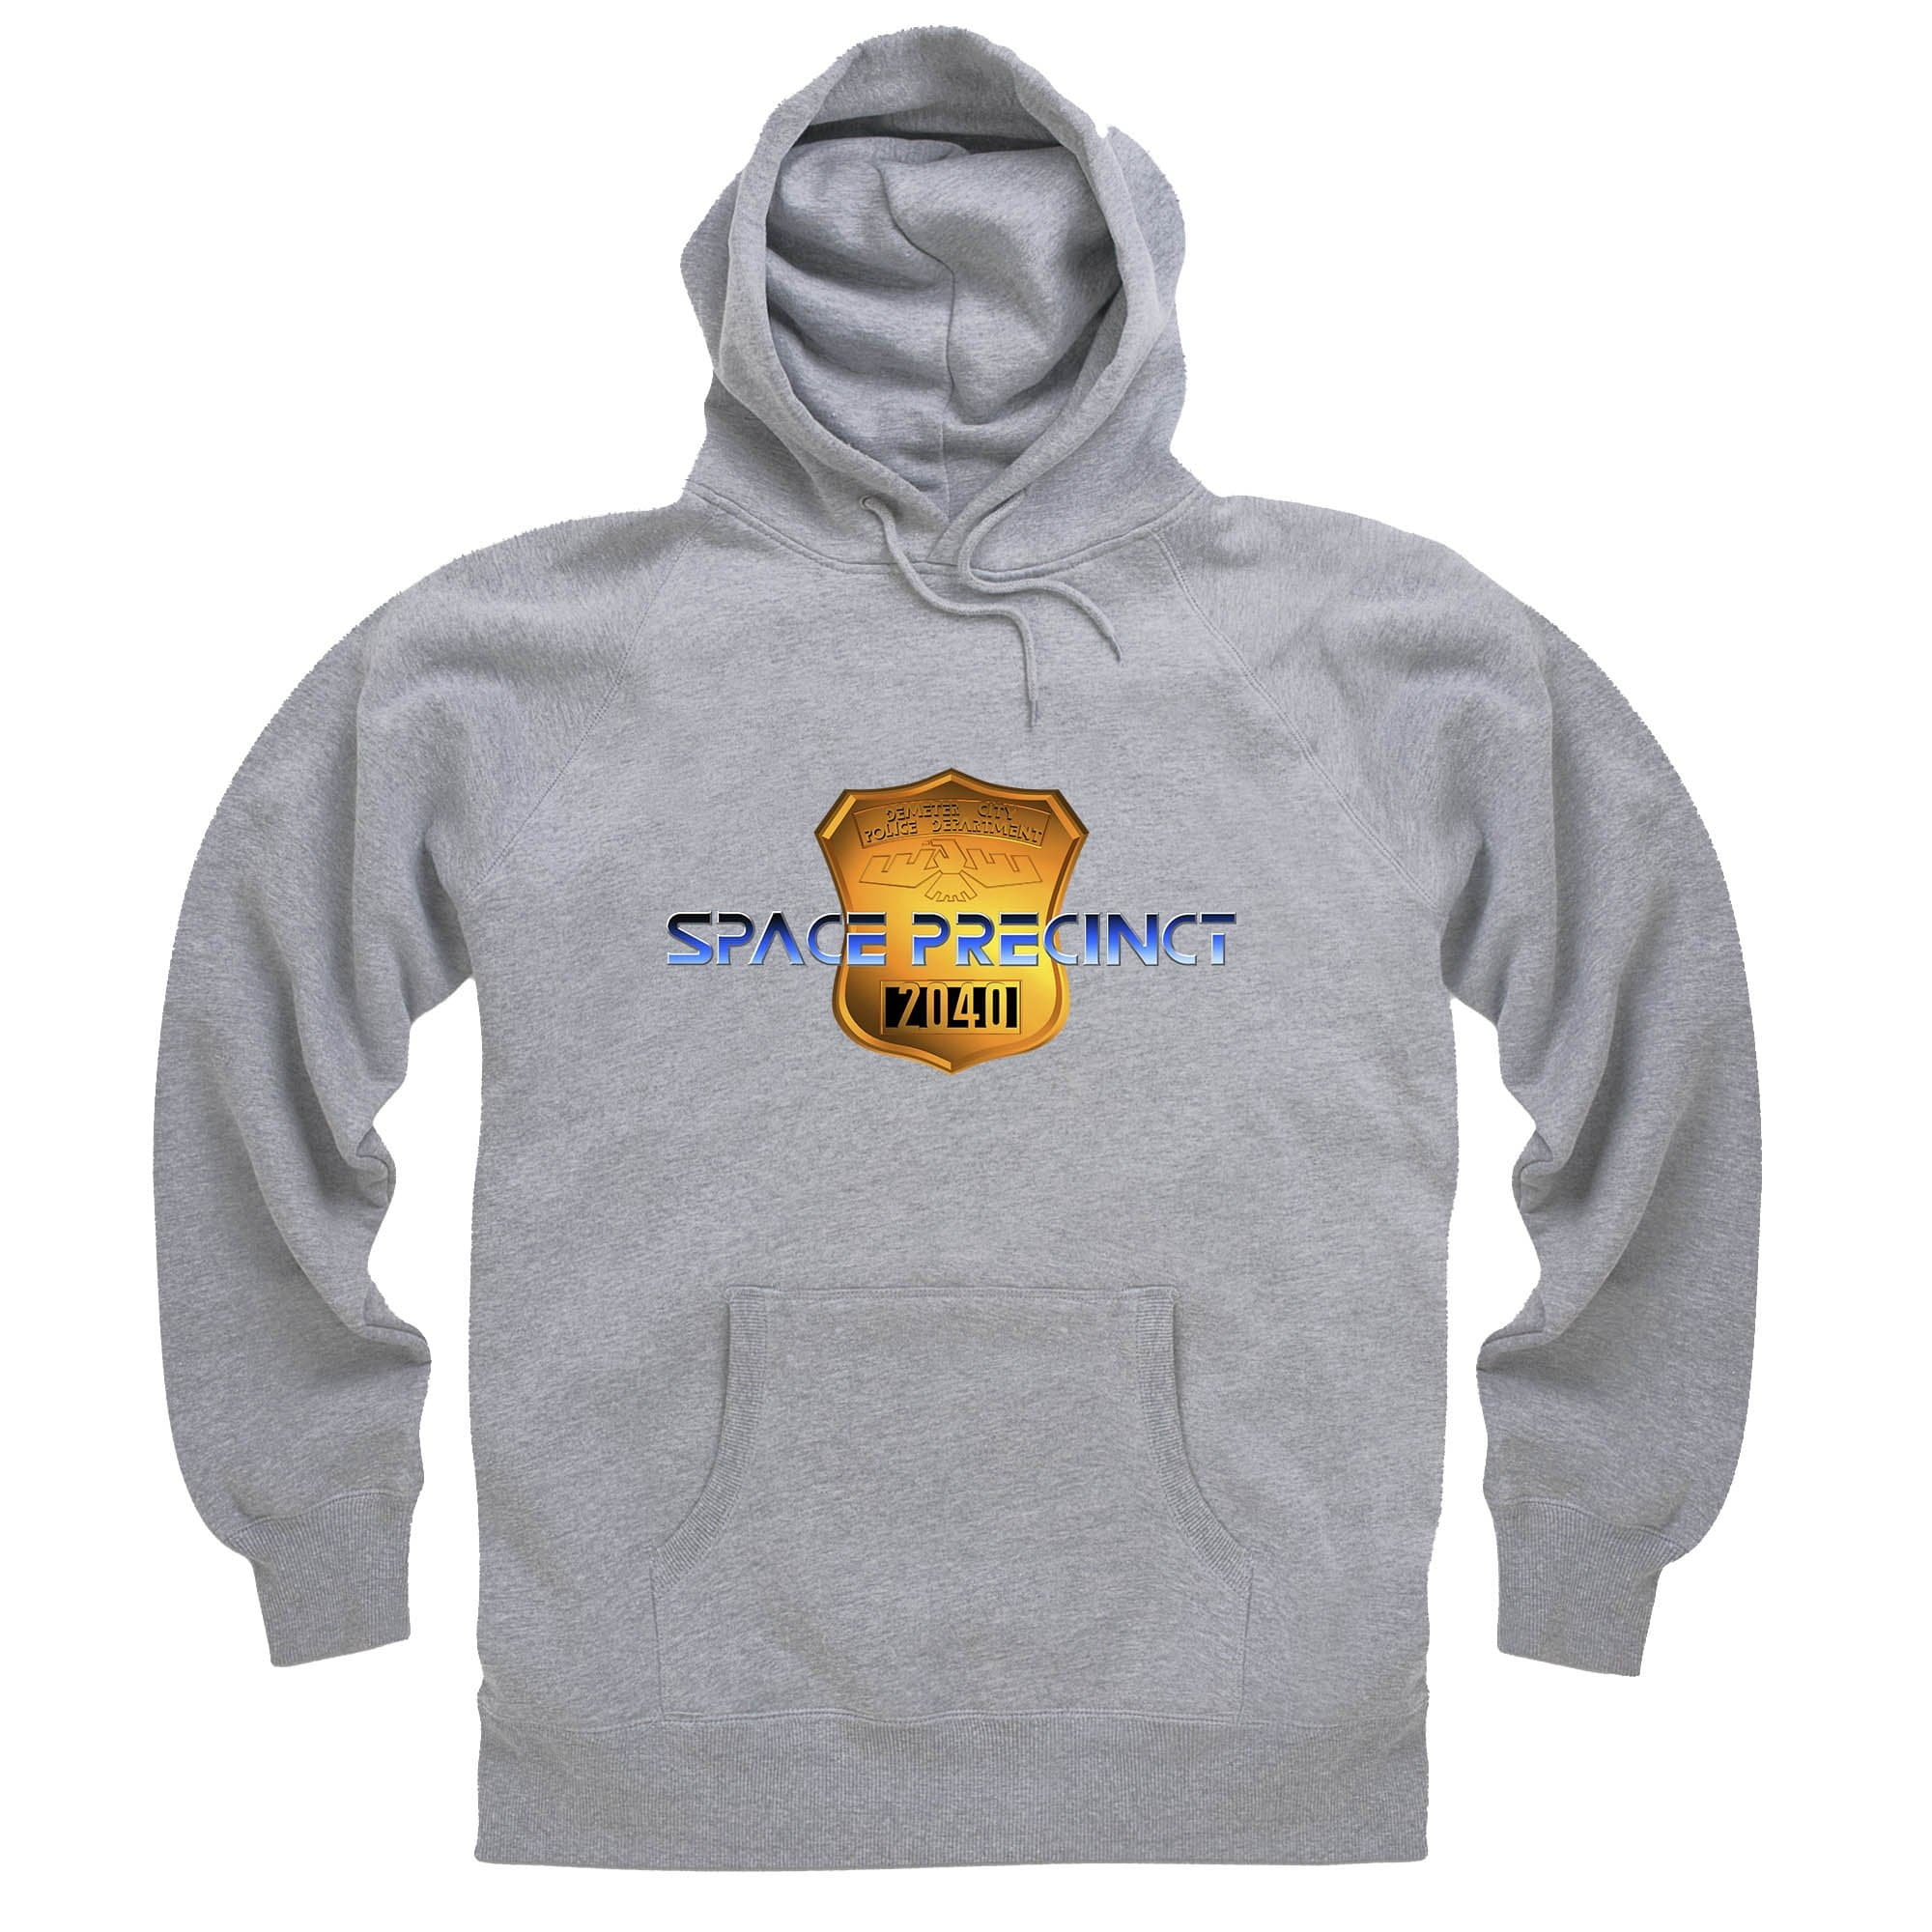 Space Precinct Logo Hoodie [Official & Exclusive] - The Gerry Anderson Store